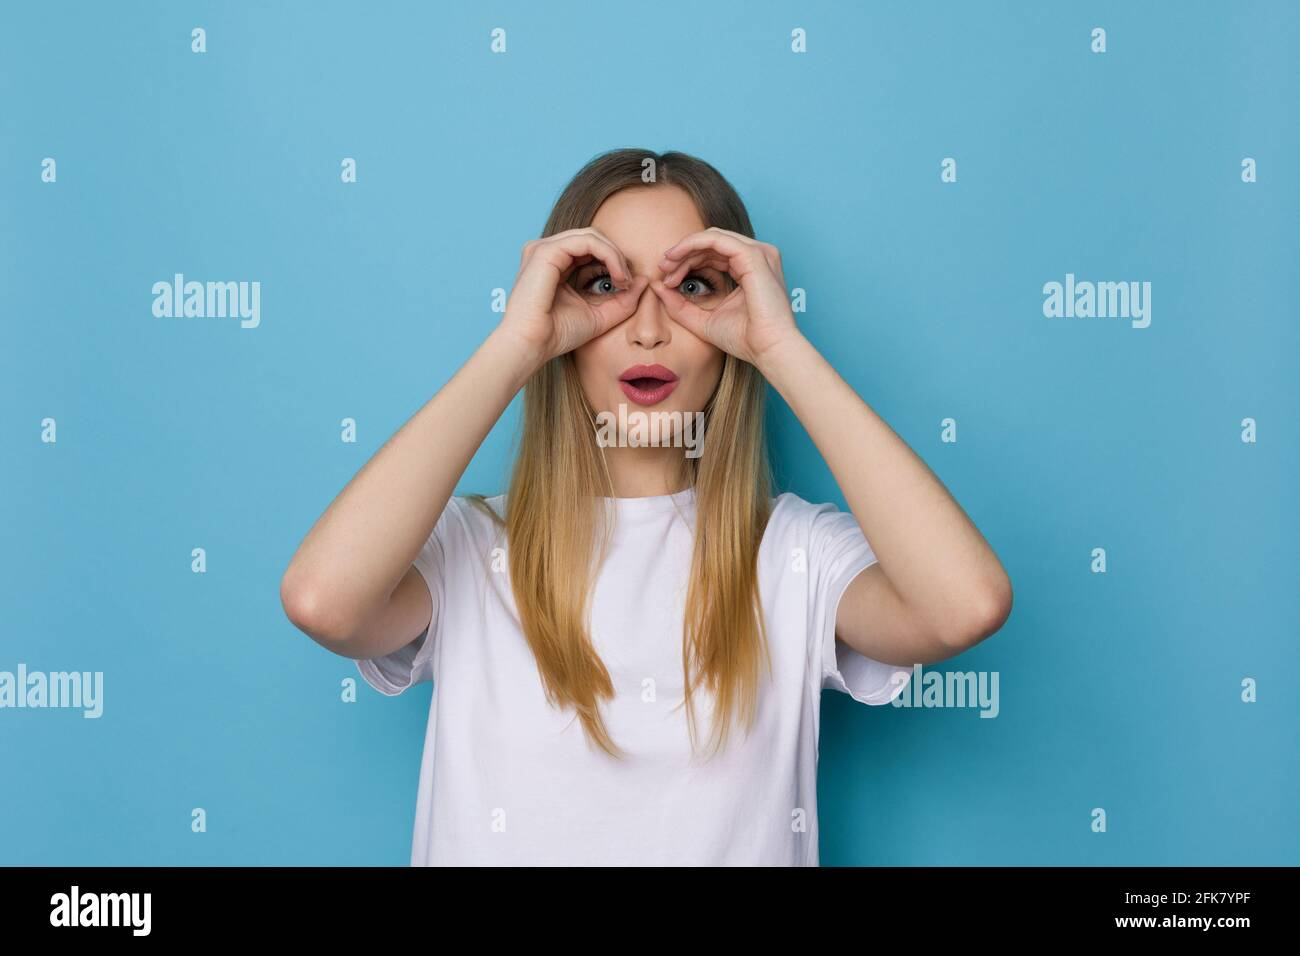 Surprised young woman in white shirt is making binoculars hands and looking at camera. Waist up studio shot on blue background. Stock Photo